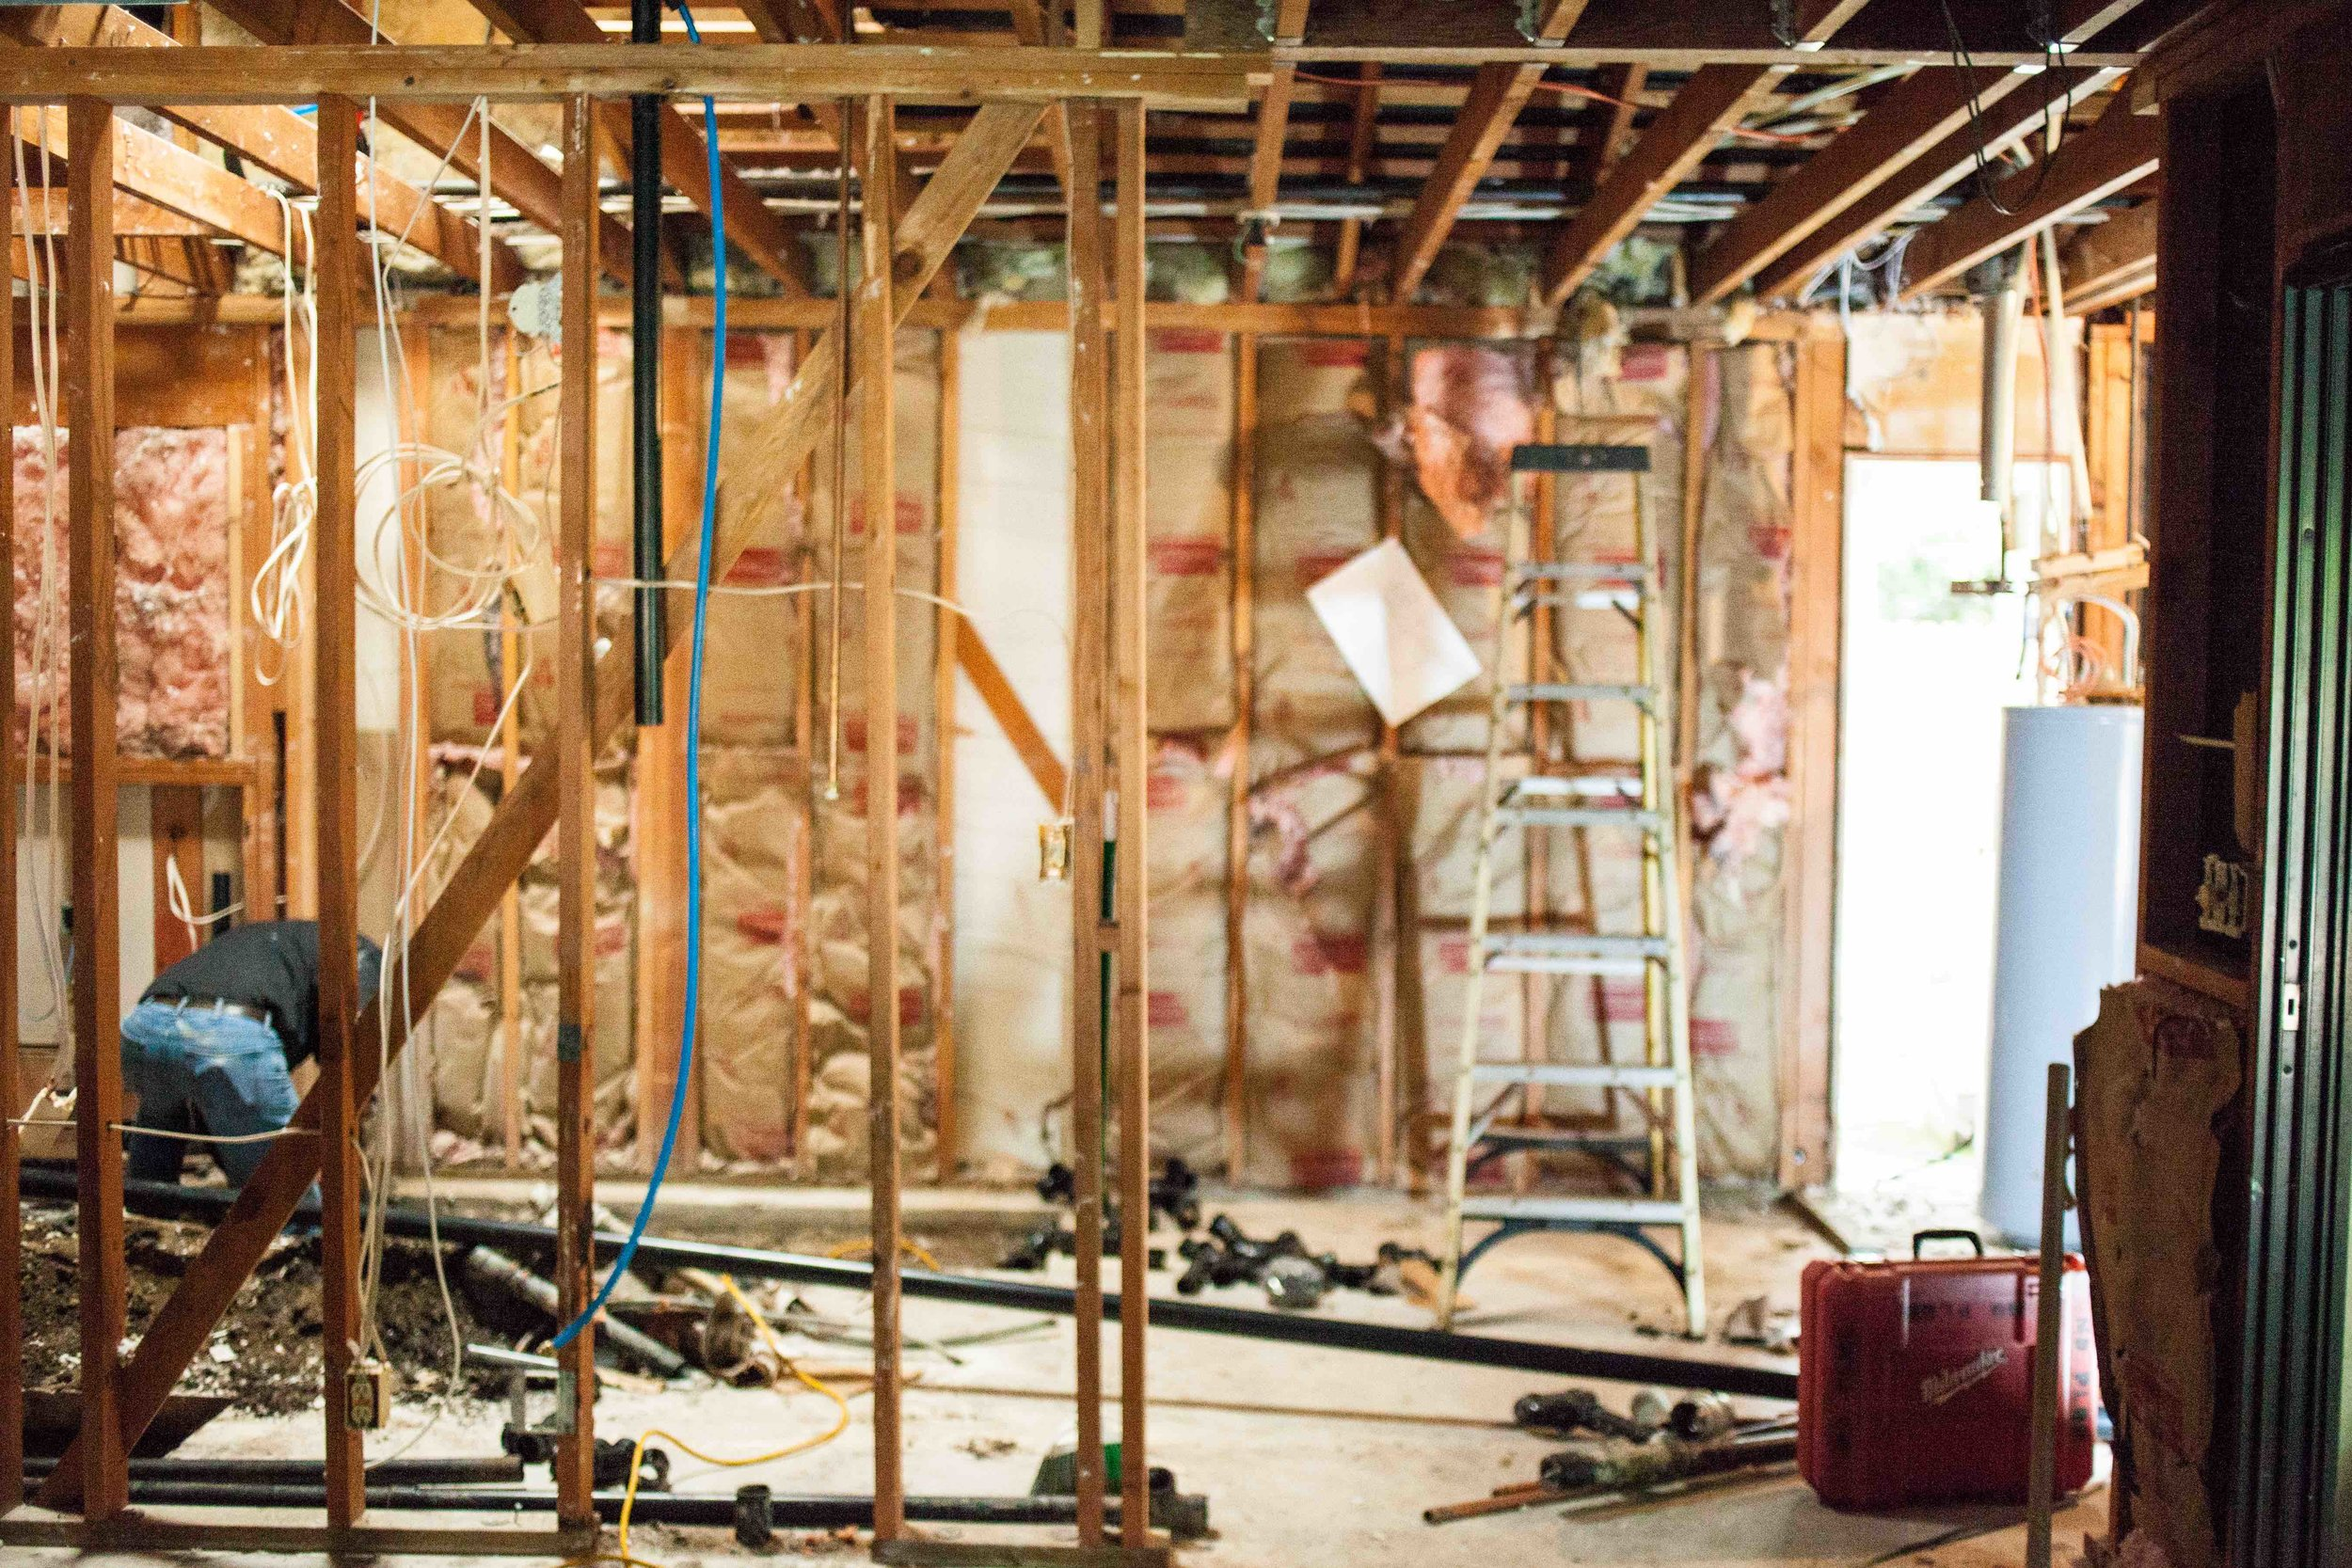 WHAT ARE YOU LOOKING AT?   1.  FOREGROUND : EXISTING MASTER BEDROOM 2.  STRAIGHT AHEAD & TO THE LEFT: CONCRETE TRENCHING TO PREPARE FOR PLUMBING CHANGES 3.  CENTER : PLANS ATTACHED TO THE STUDS...SEEING THIS ALWAYS MAKES ME HAPPY! 4.  FAR LEFT:  WATER HEATER AND OLD CLOSET STORAGE